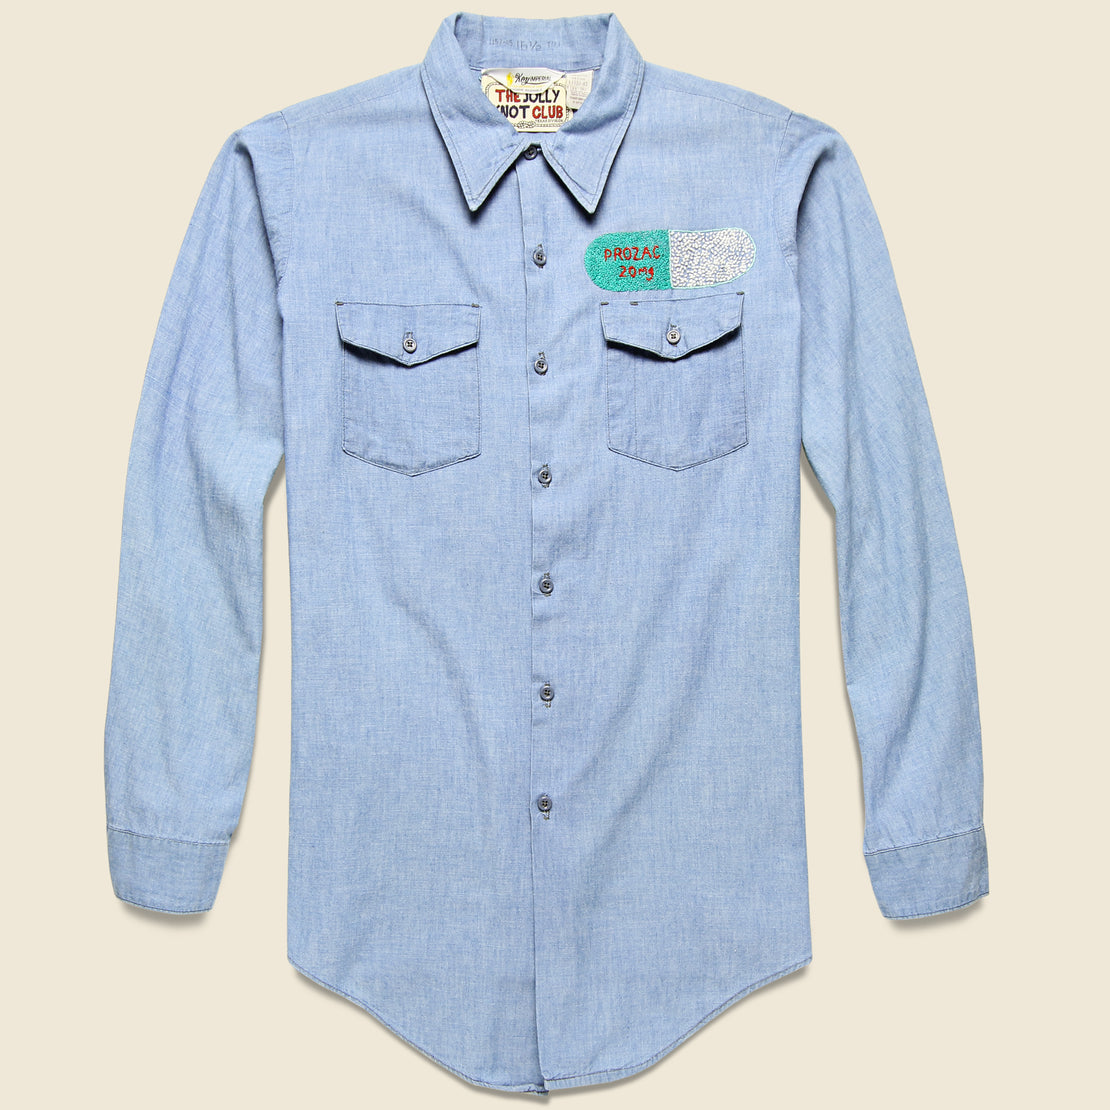 Embroidered Chambray Shirt - Valley of the Dolls